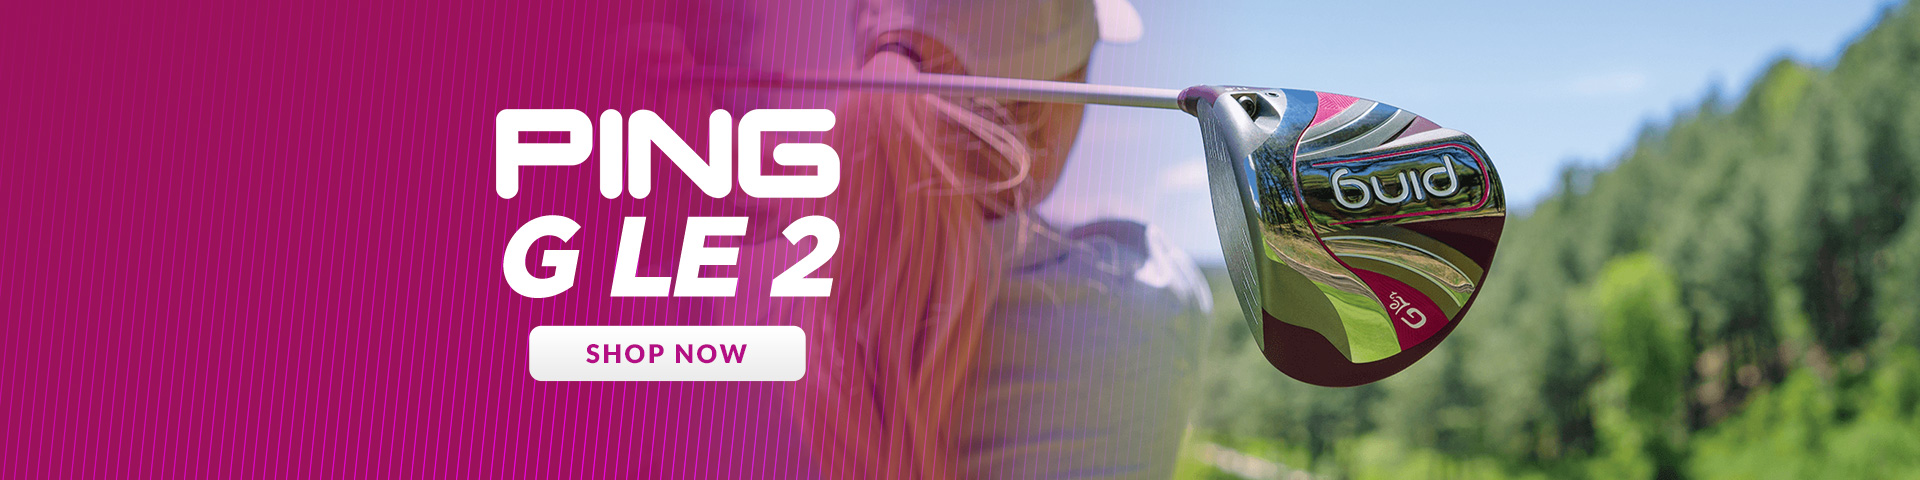 Ping G Le 2 ladies golf clubs banner